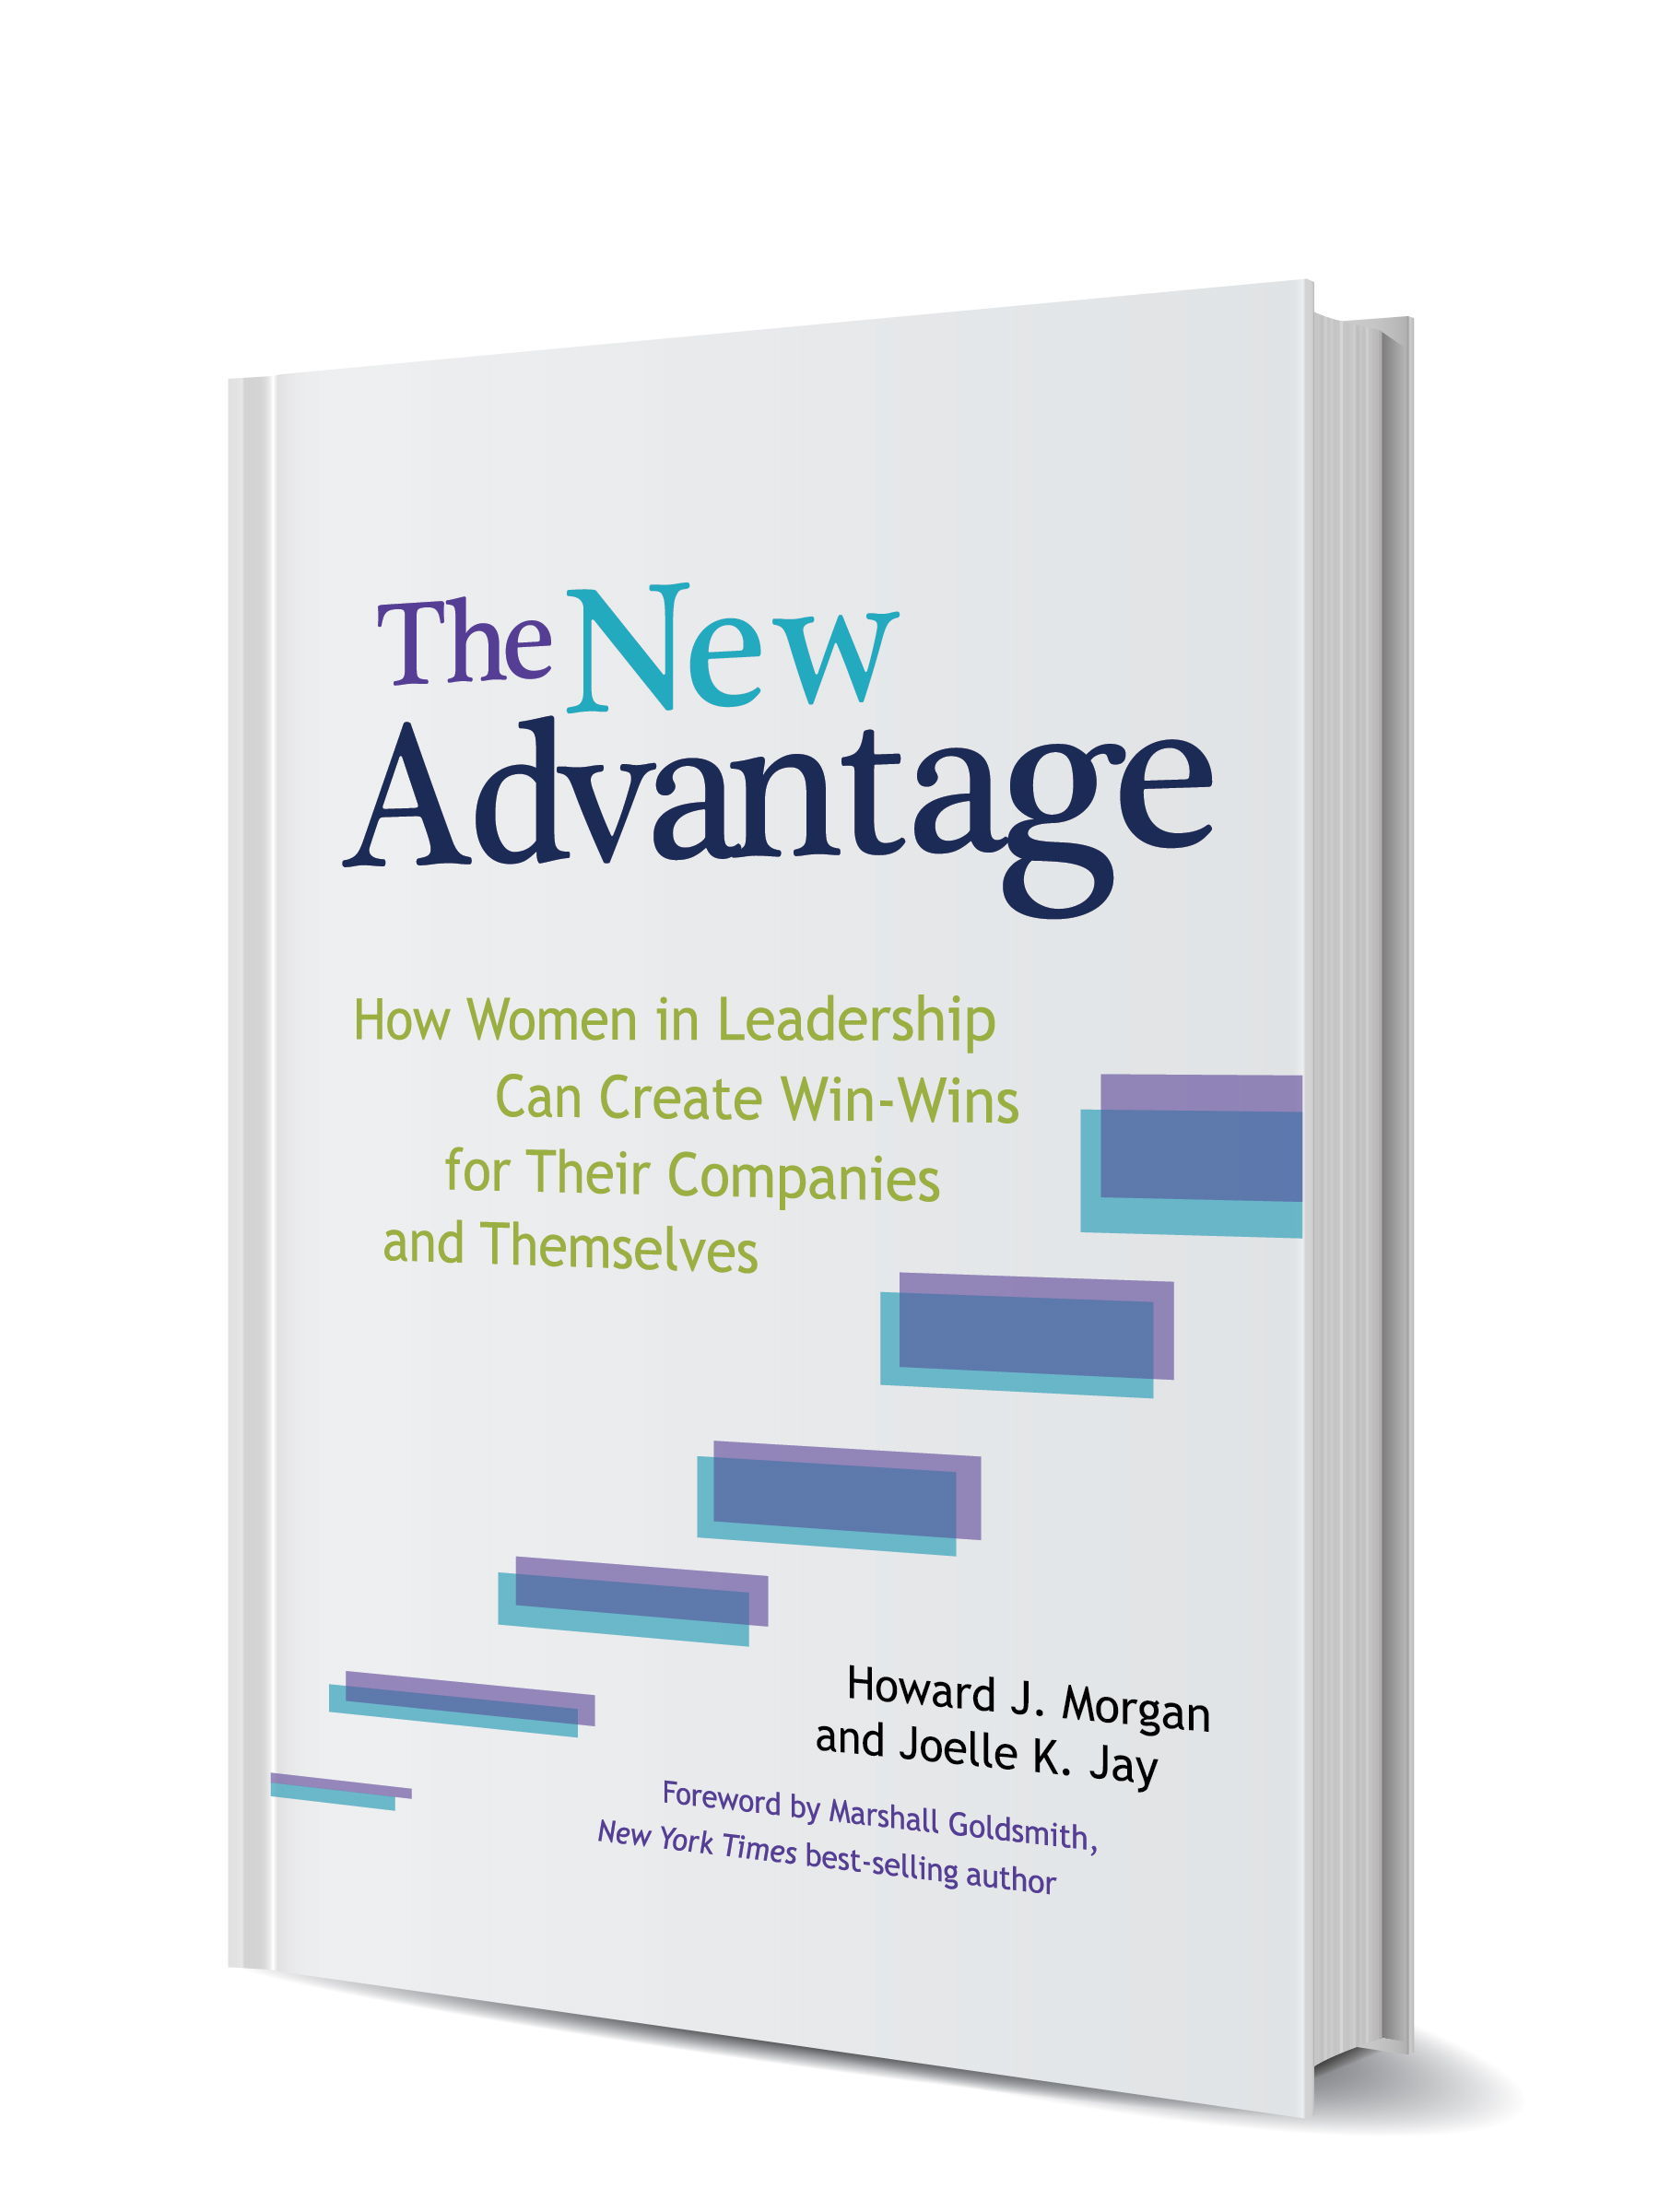 The New Advantage